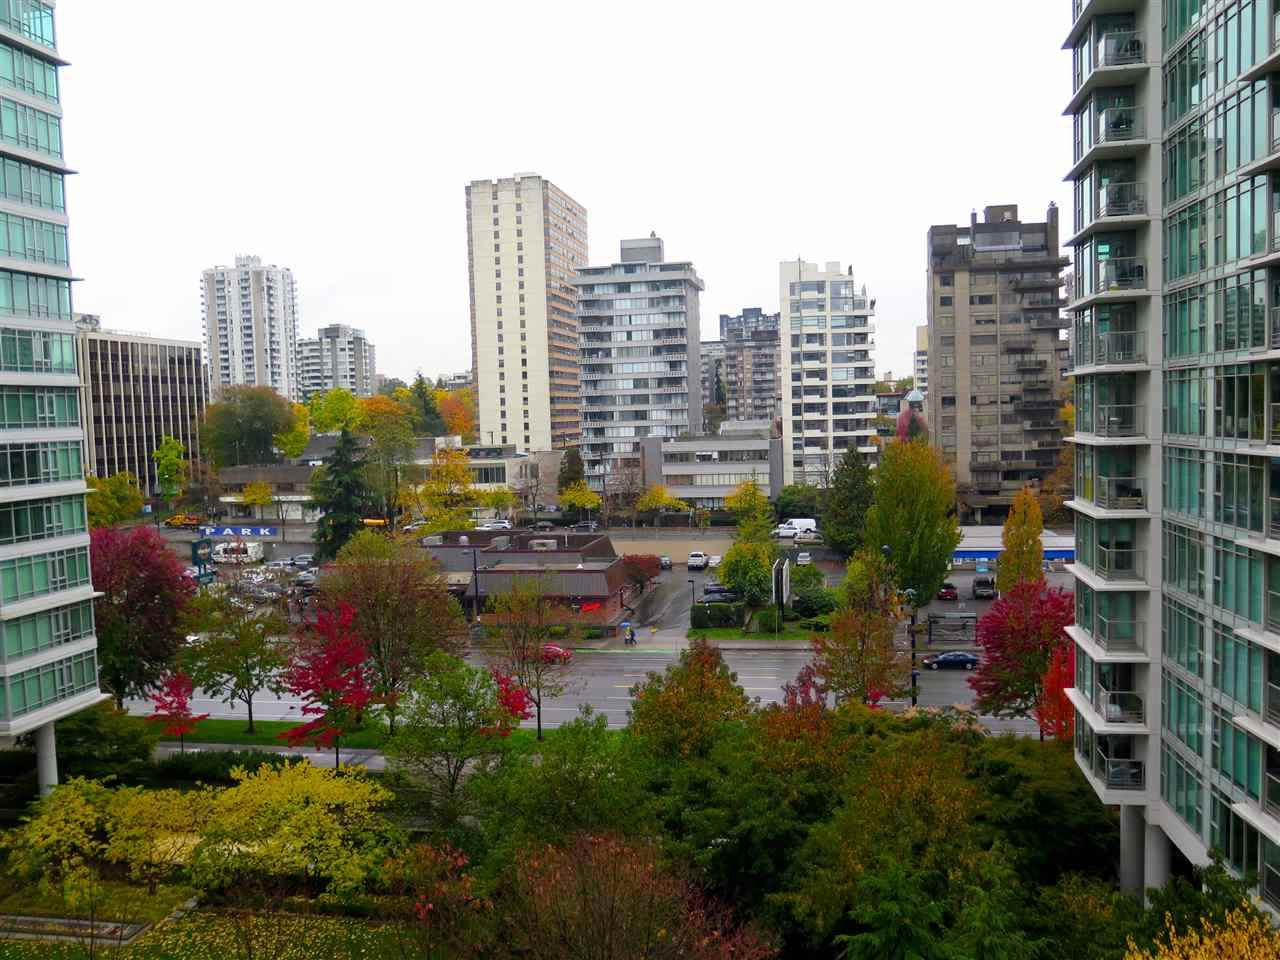 Photo 6: 1201 1650 BAYSHORE Drive in Vancouver: Coal Harbour Condo for sale (Vancouver West)  : MLS® # R2175467